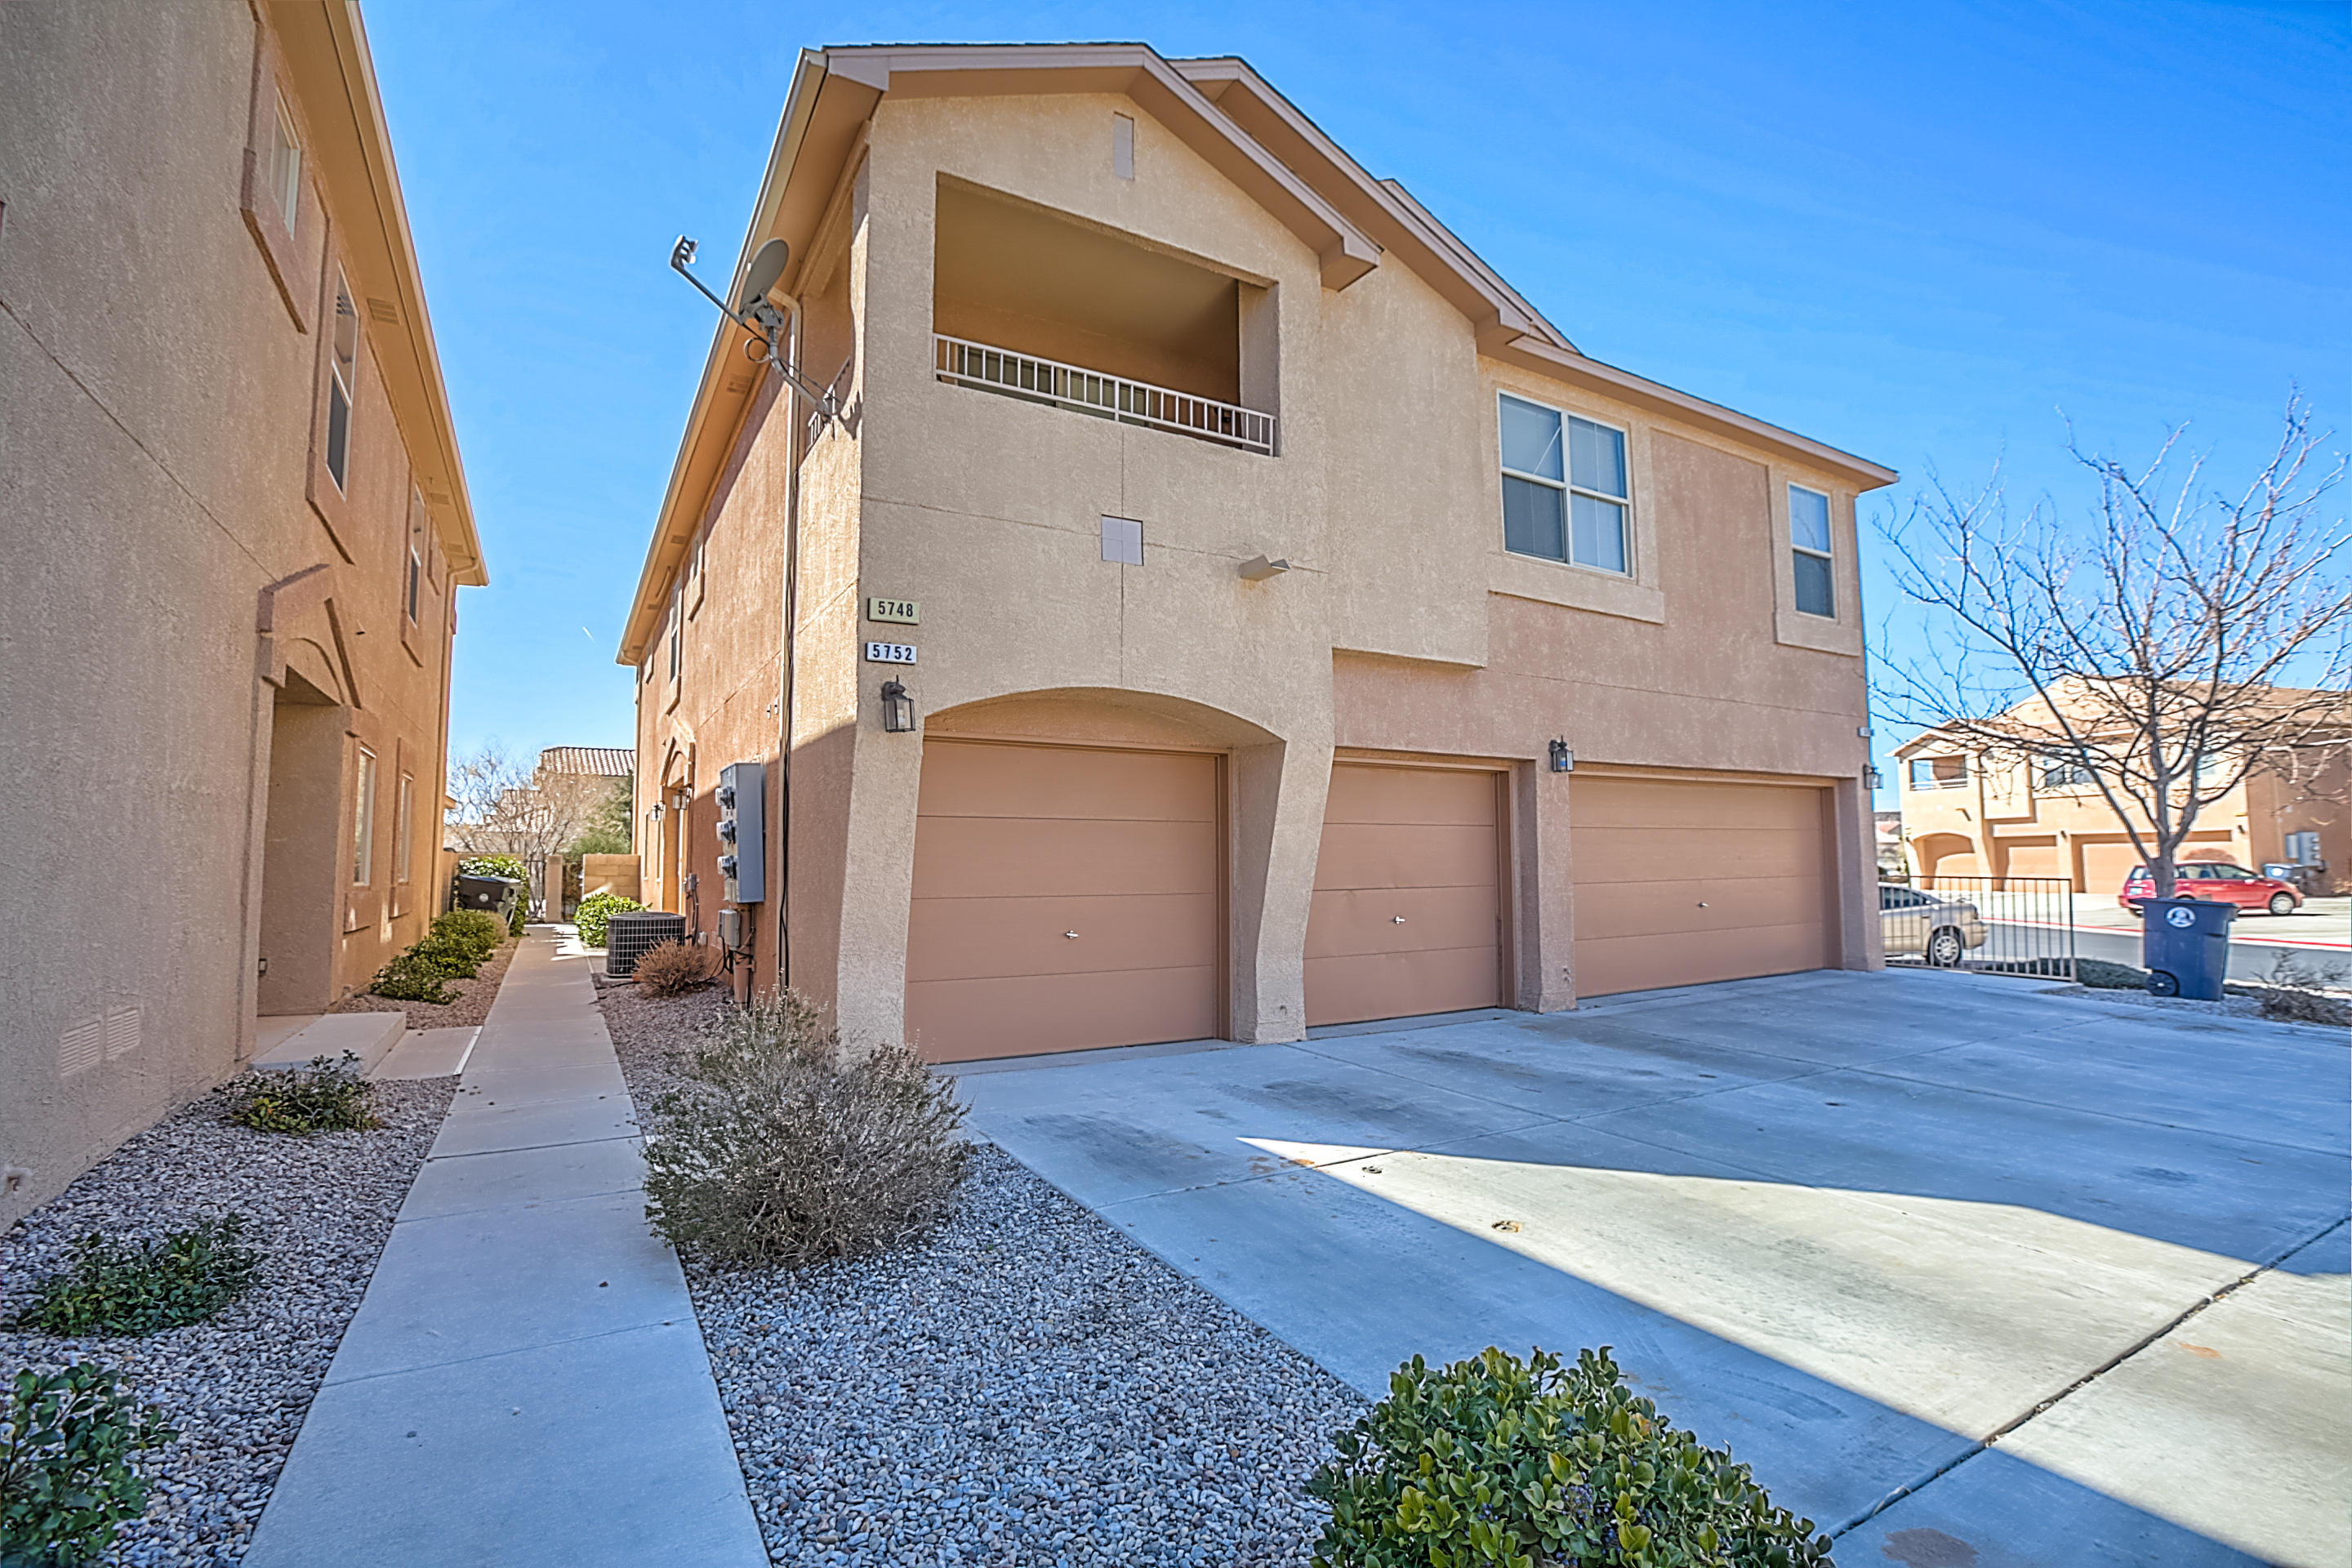 5748 NW Valle Alegre Road, one of homes for sale in Northwest Albuquerque and Northwest Heights